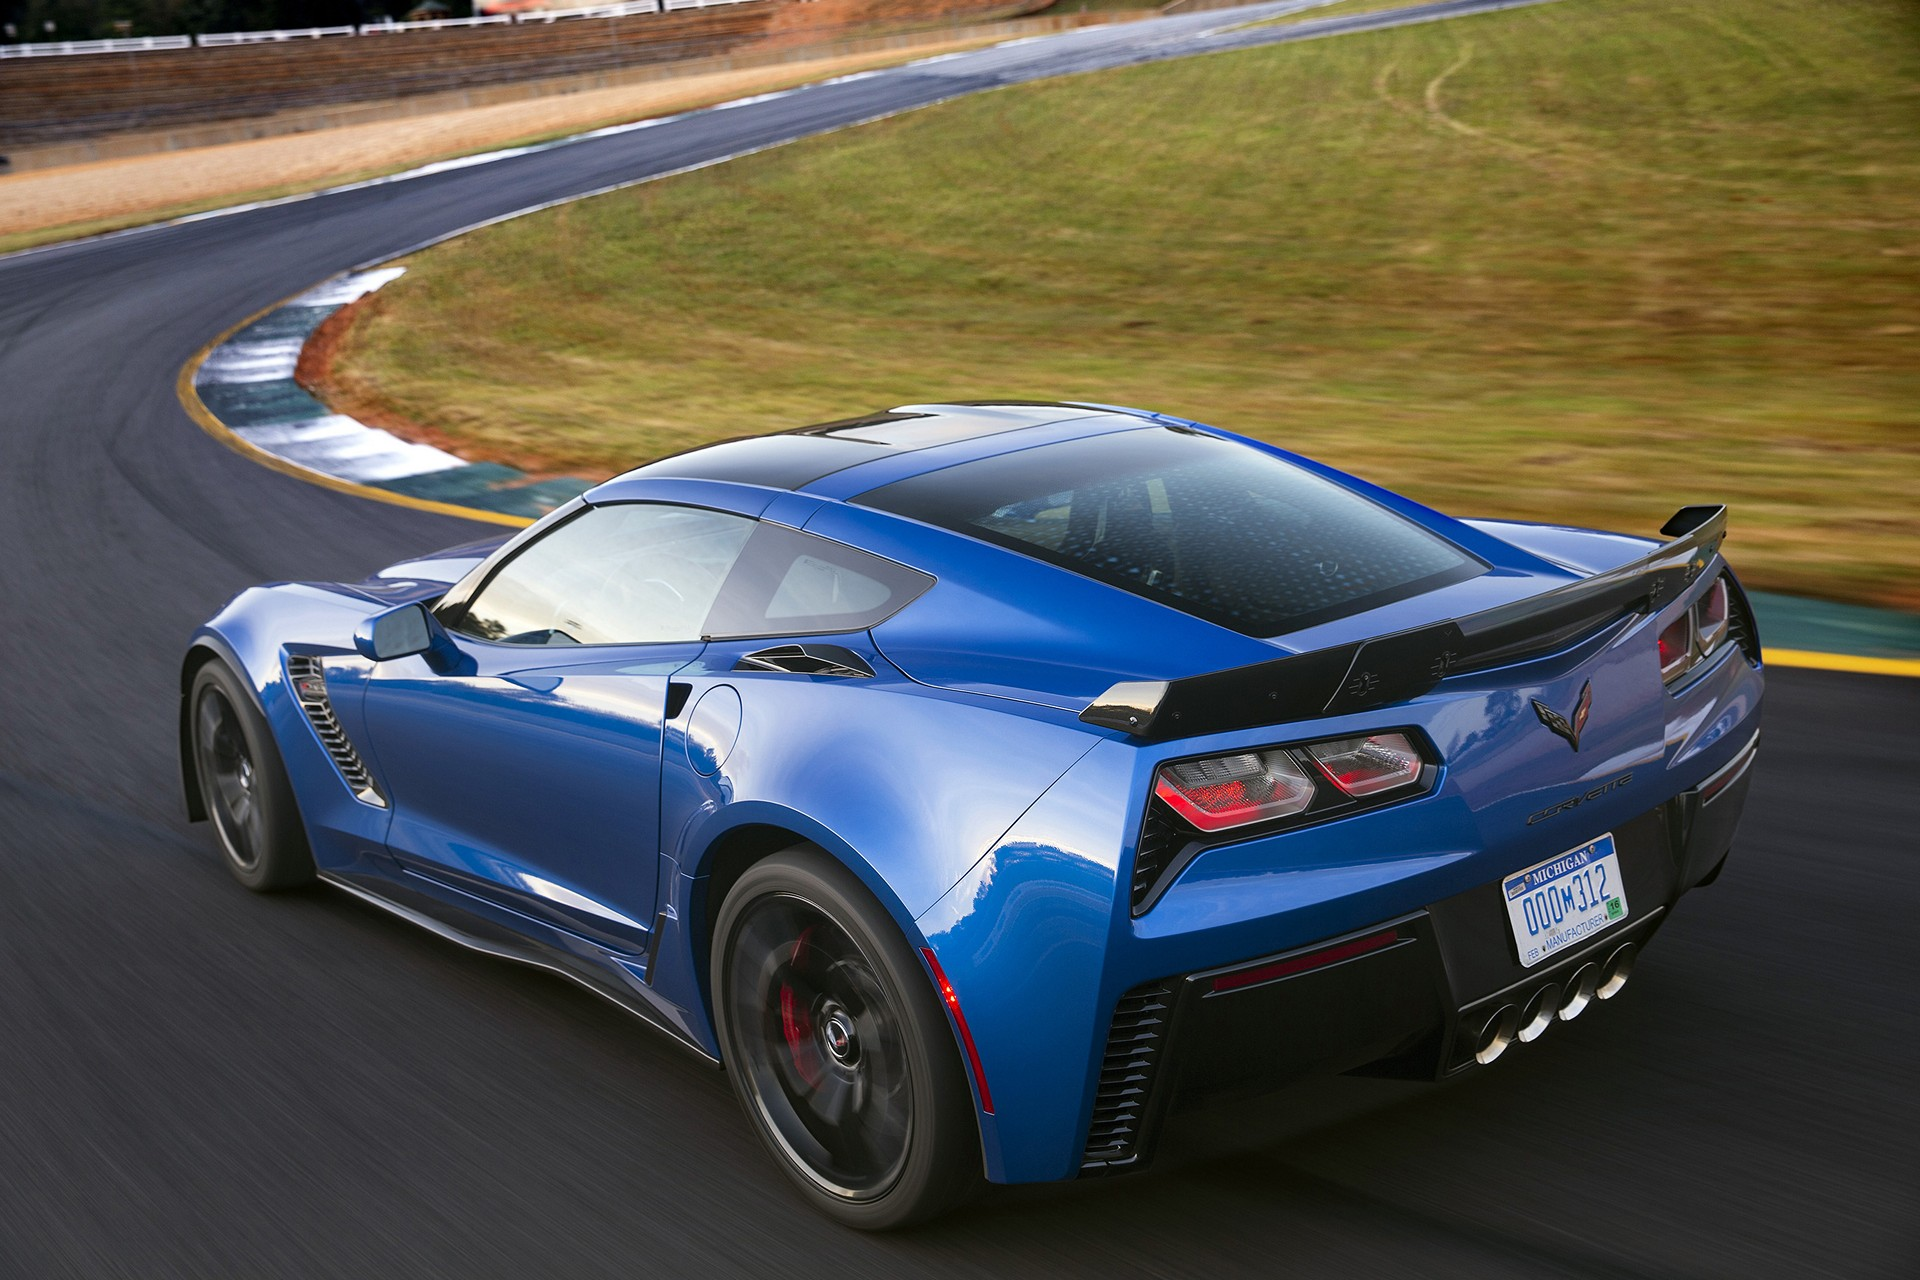 https://i0.wp.com/carrrs.com/wp-content/uploads/2016/02/2016-Chevrolet-CorvetteZ06-039.jpg